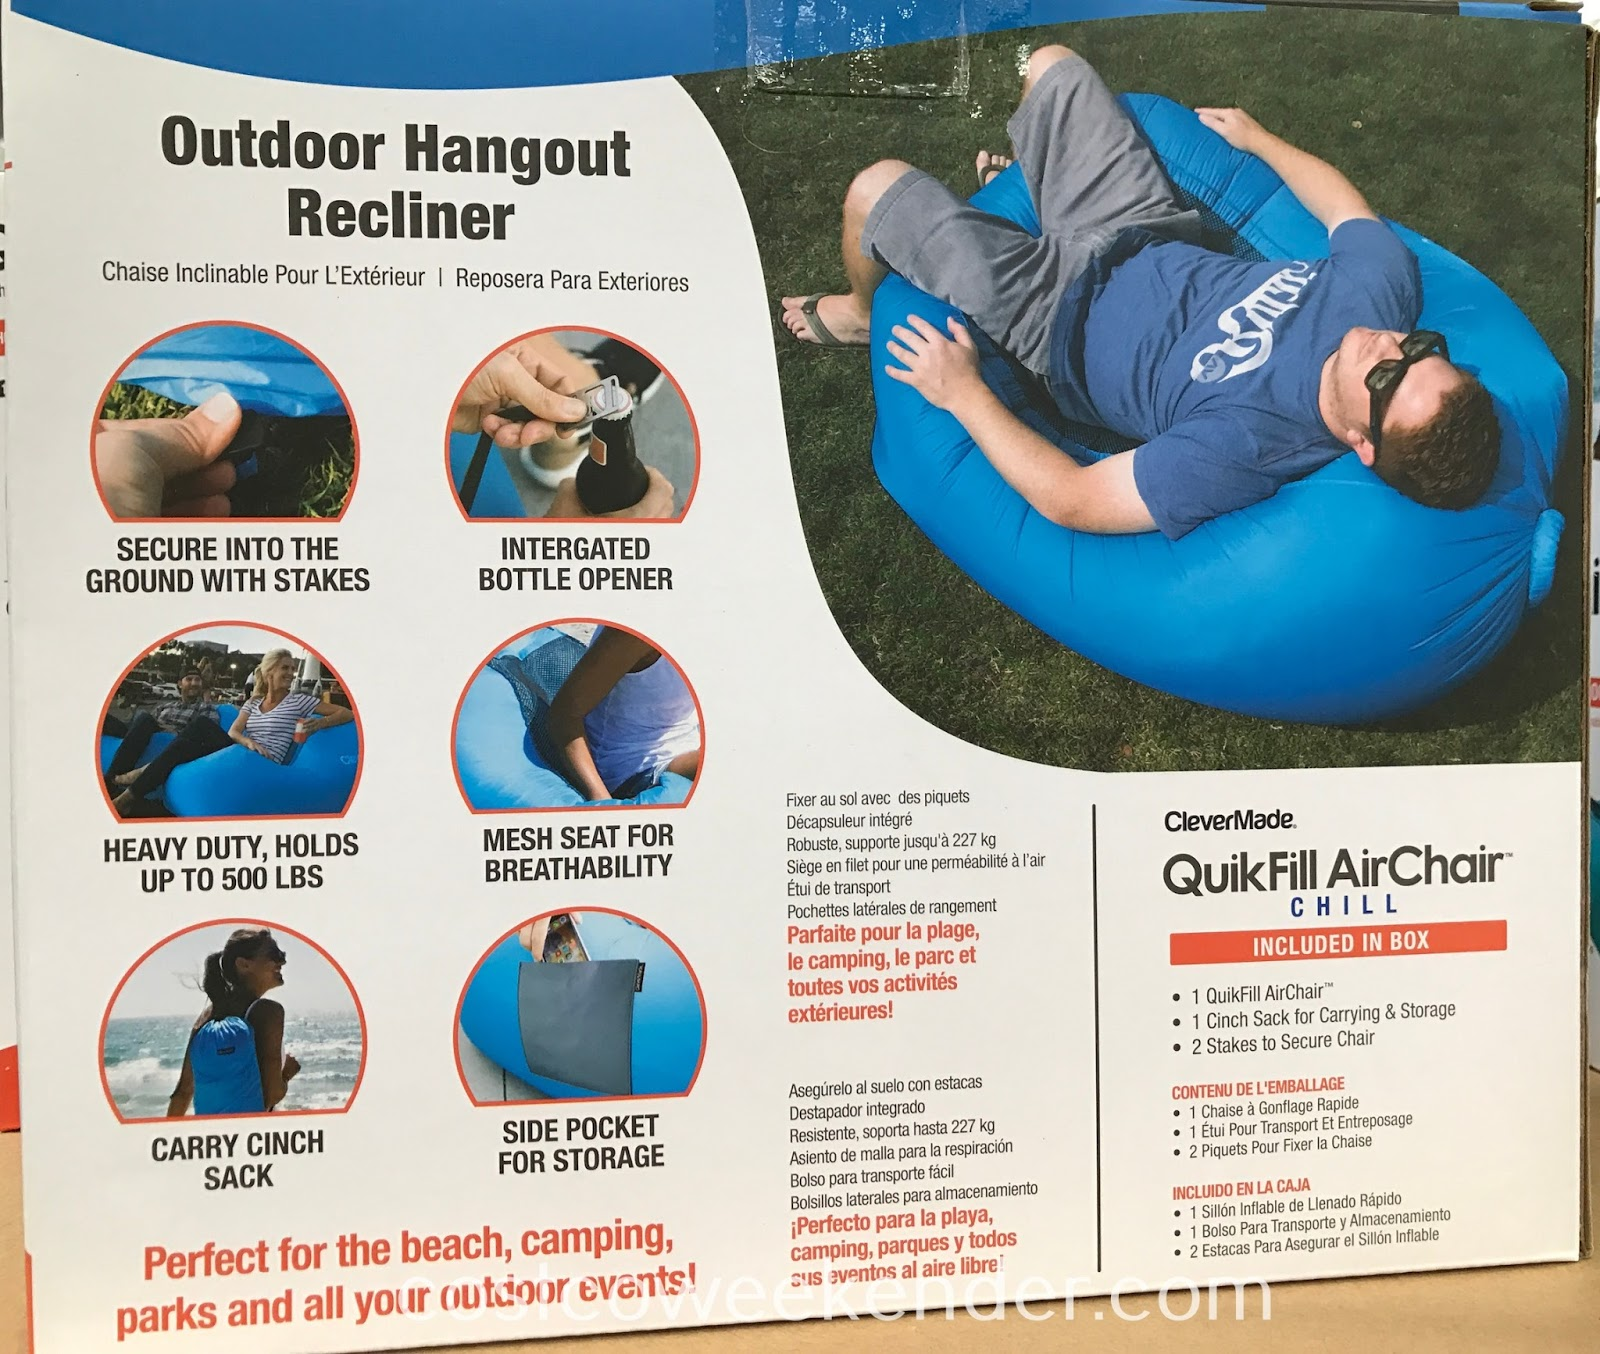 Costco 1127534 - Easily take the ClevrMade QuikFill Air Chair with you to the beach or camping